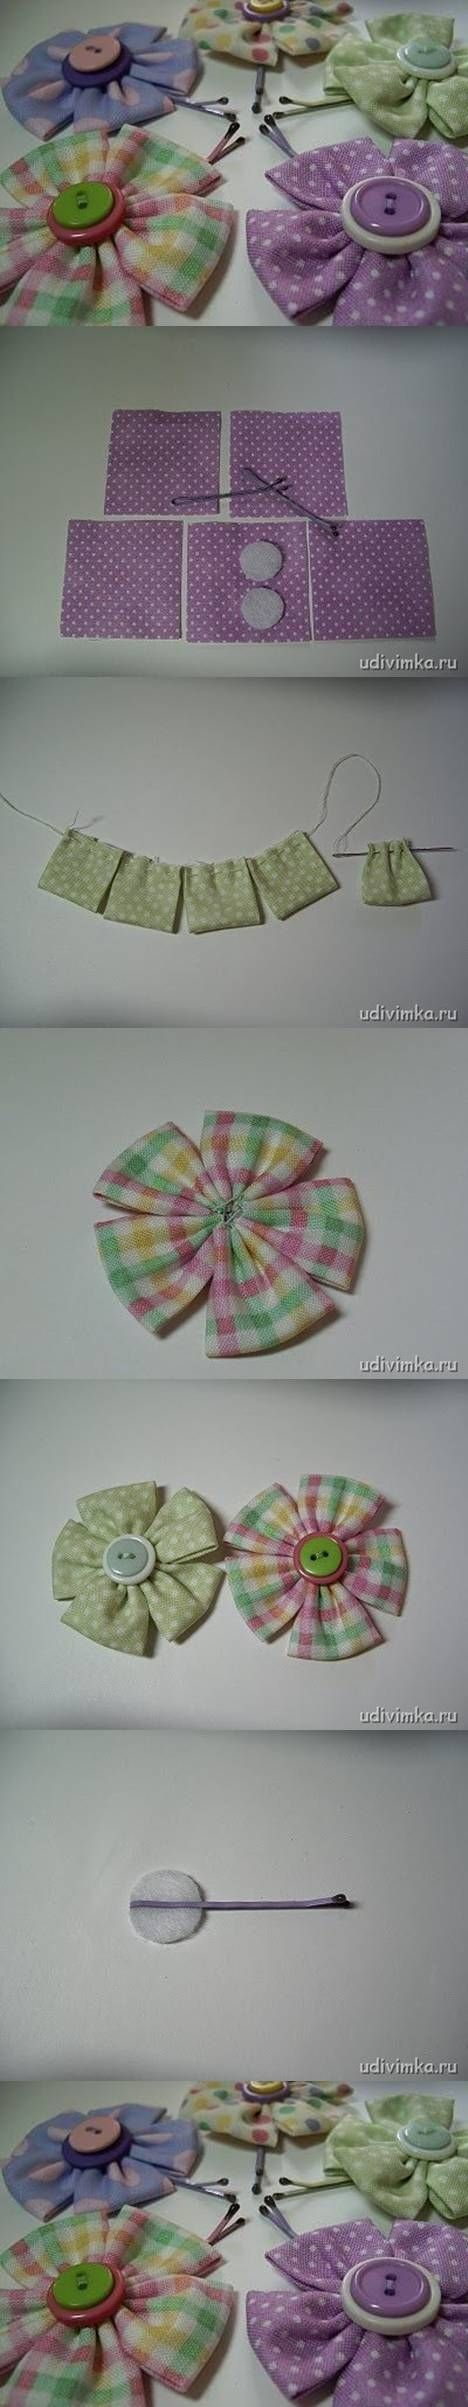 DIY Cute Fabric Flower Hairpin DIY Cute Fabric Flower Hairpin by diyforever